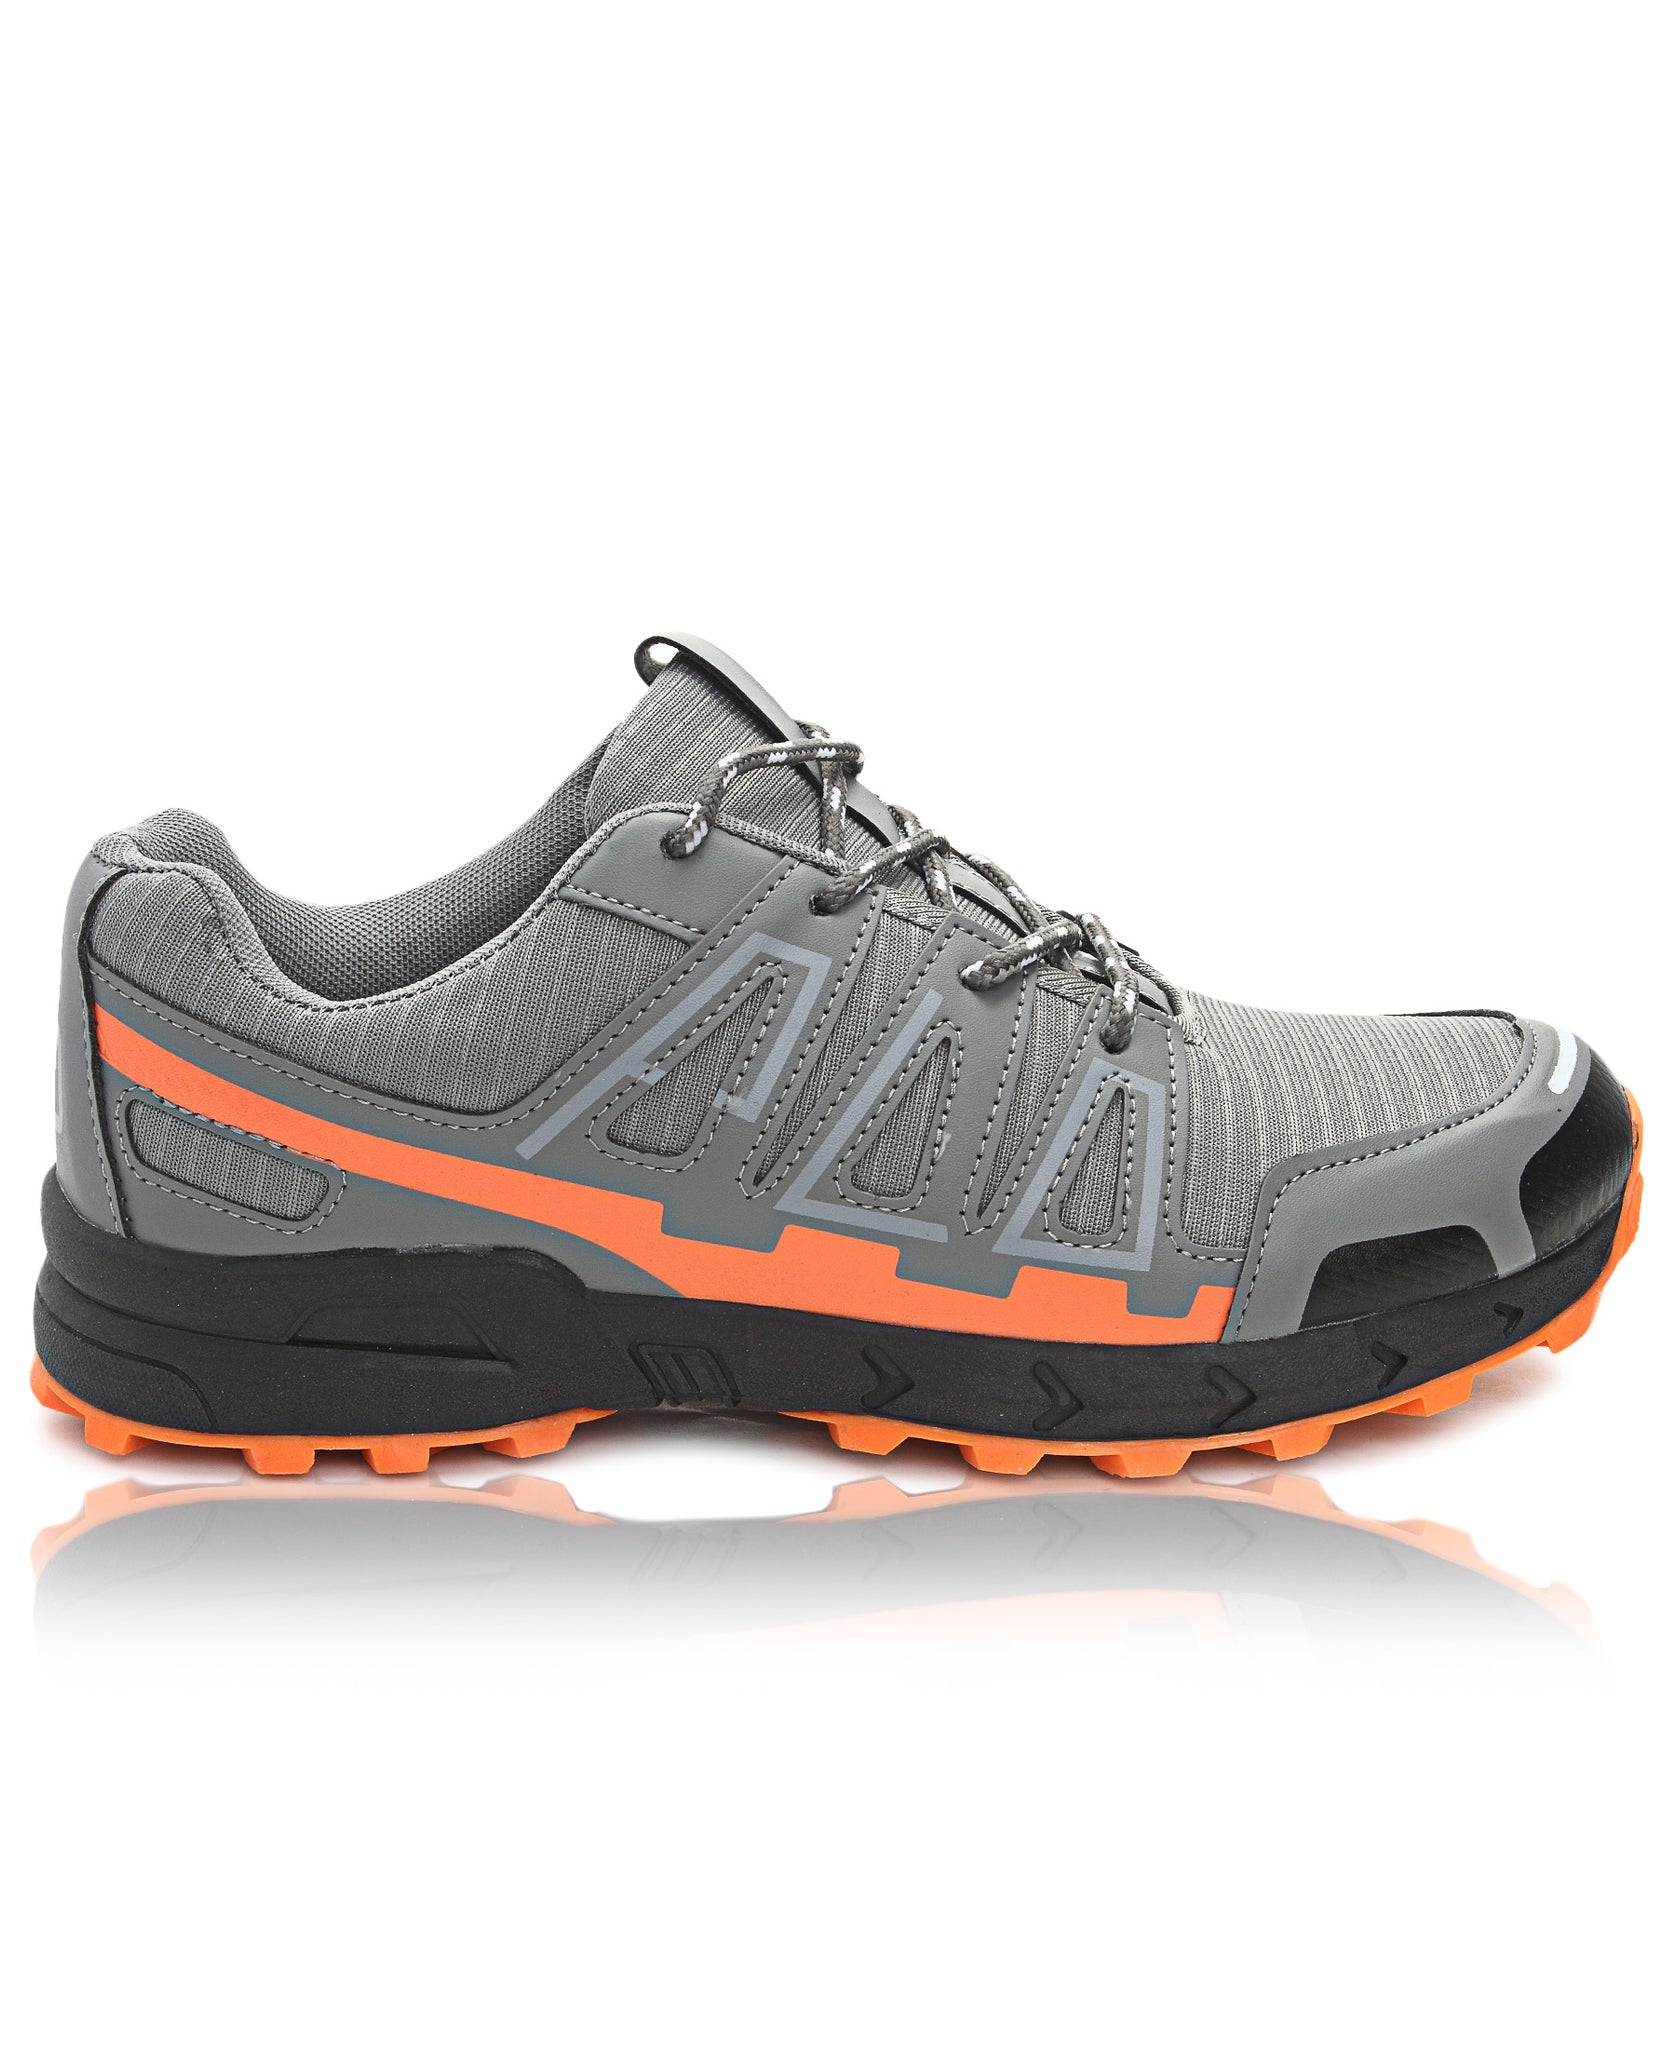 Men's Hiker Sneakers - Grey